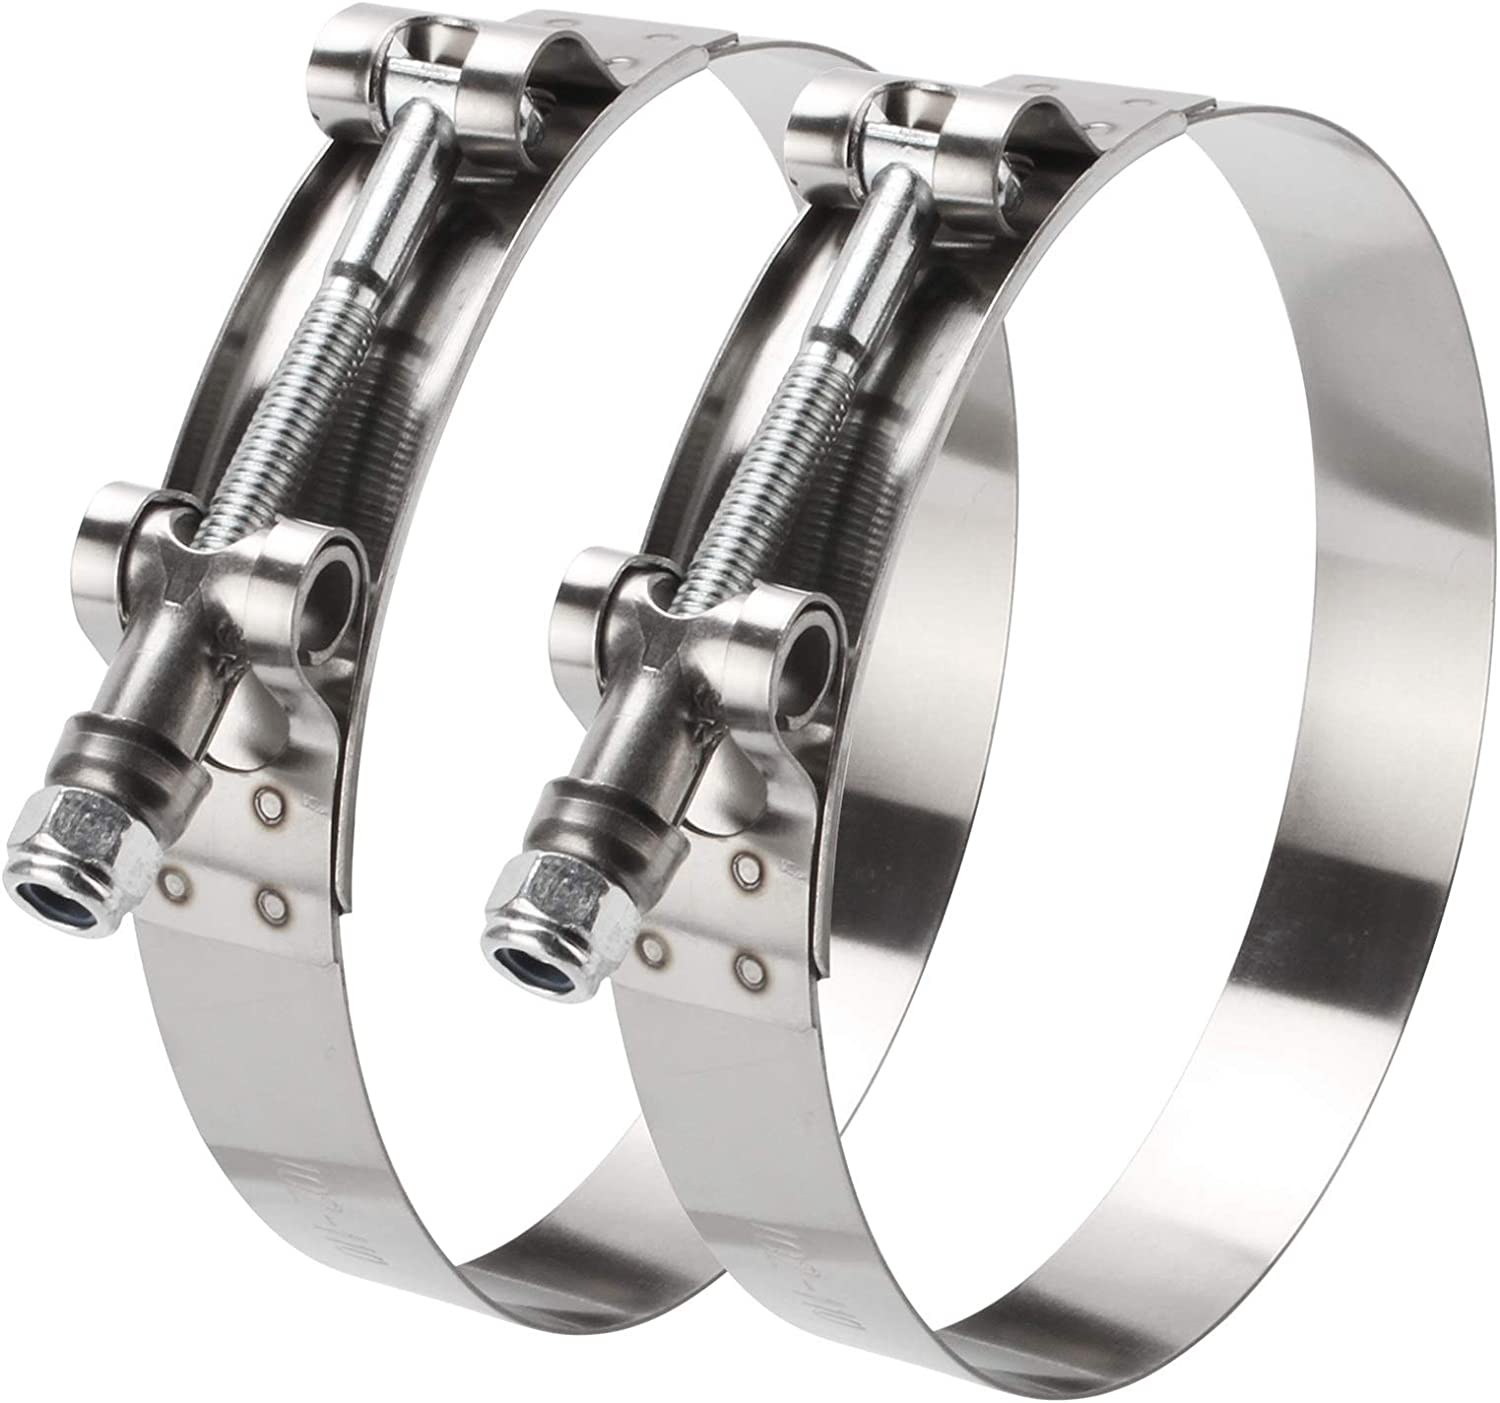 35mm-192mm Washington Mall Max 64% OFF 2 Pieces 304 Stainless Steel Turbo Ho Silicone T-Bolt